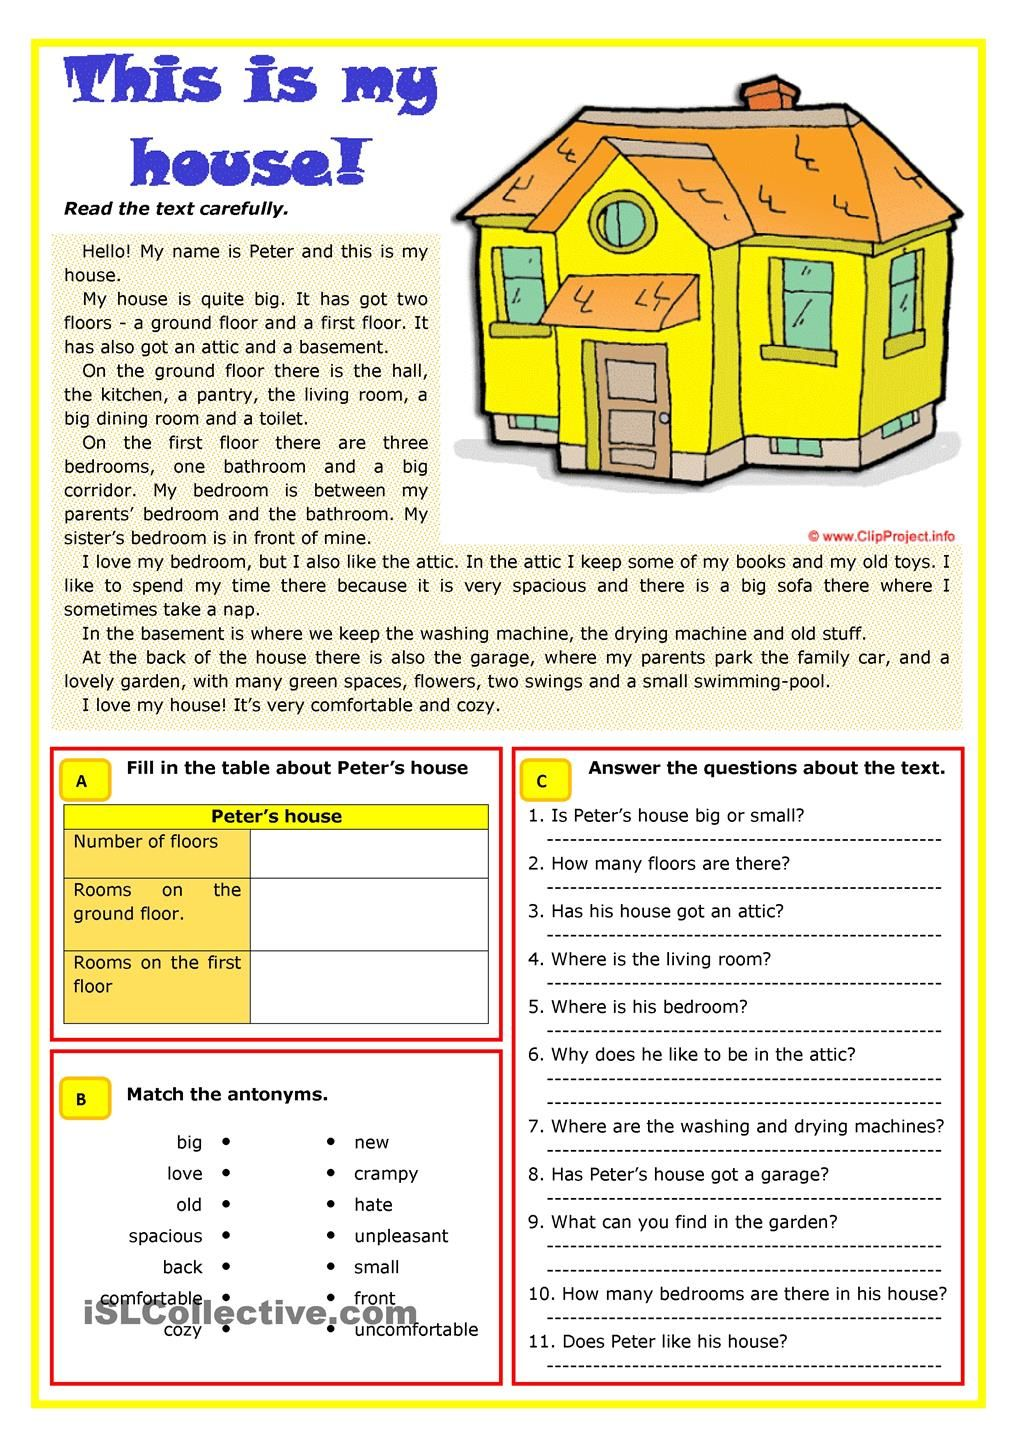 best images about house vocabulary worksheets 17 best images about house vocabulary worksheets furniture and student centered resources